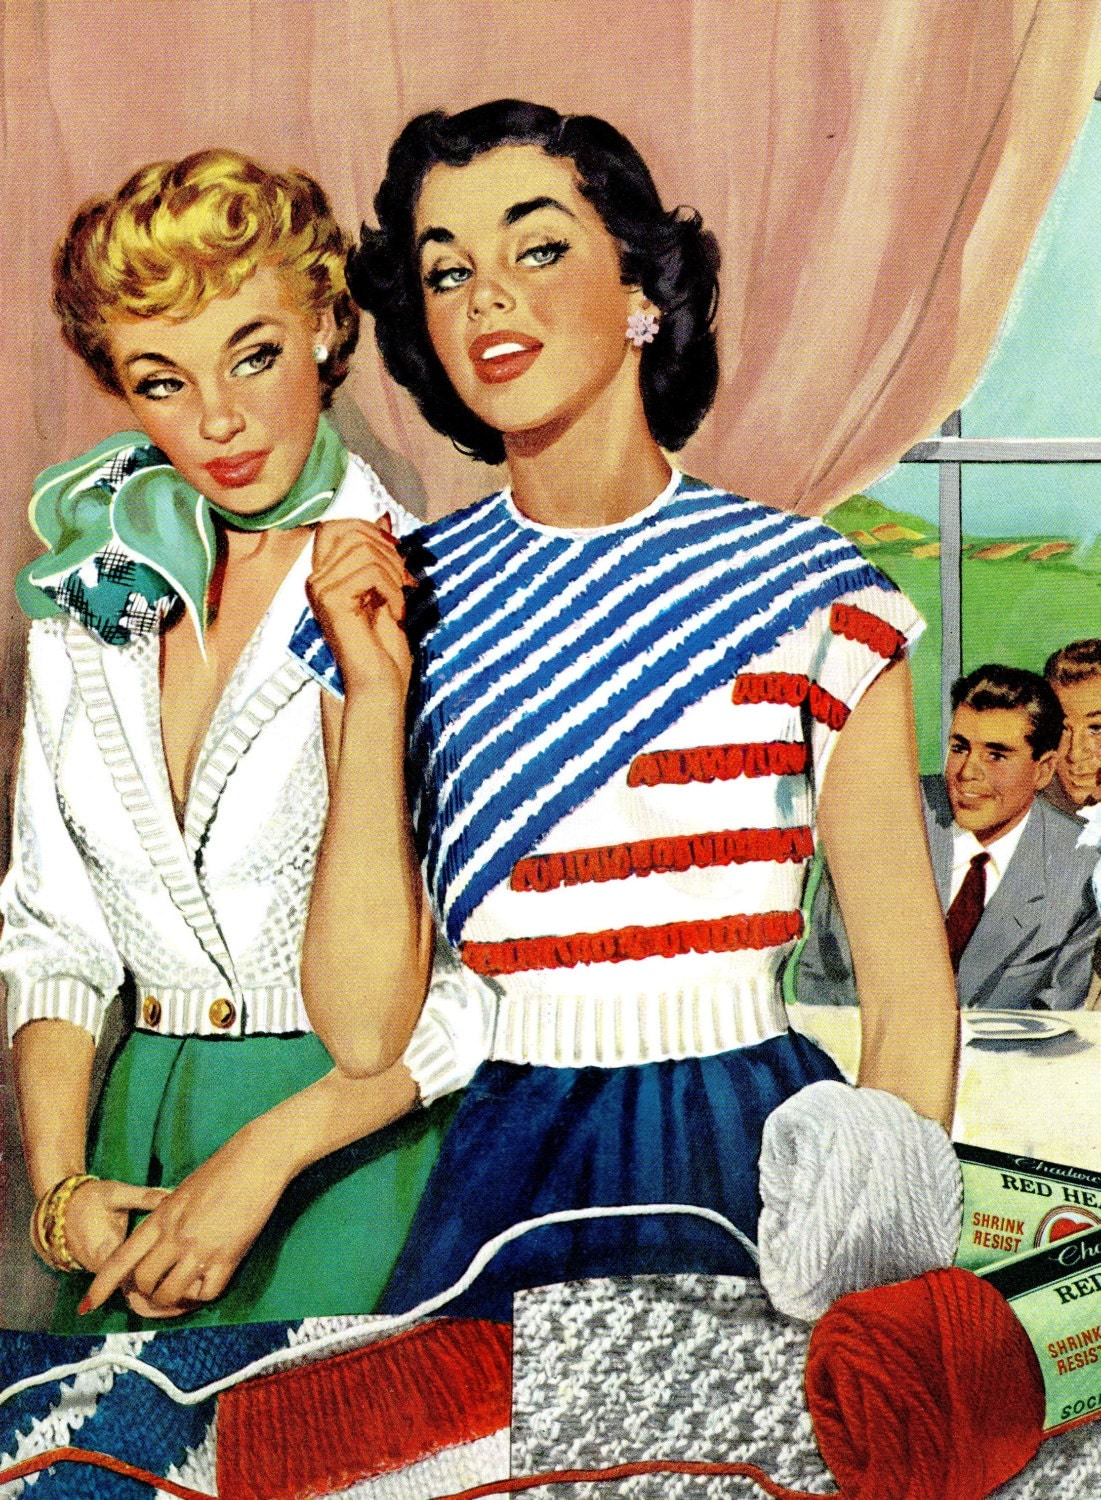 1950s Vintage Retro Fashion Sweaters Knitting Crochet Pattern Booklet Diy Instructions Pullover